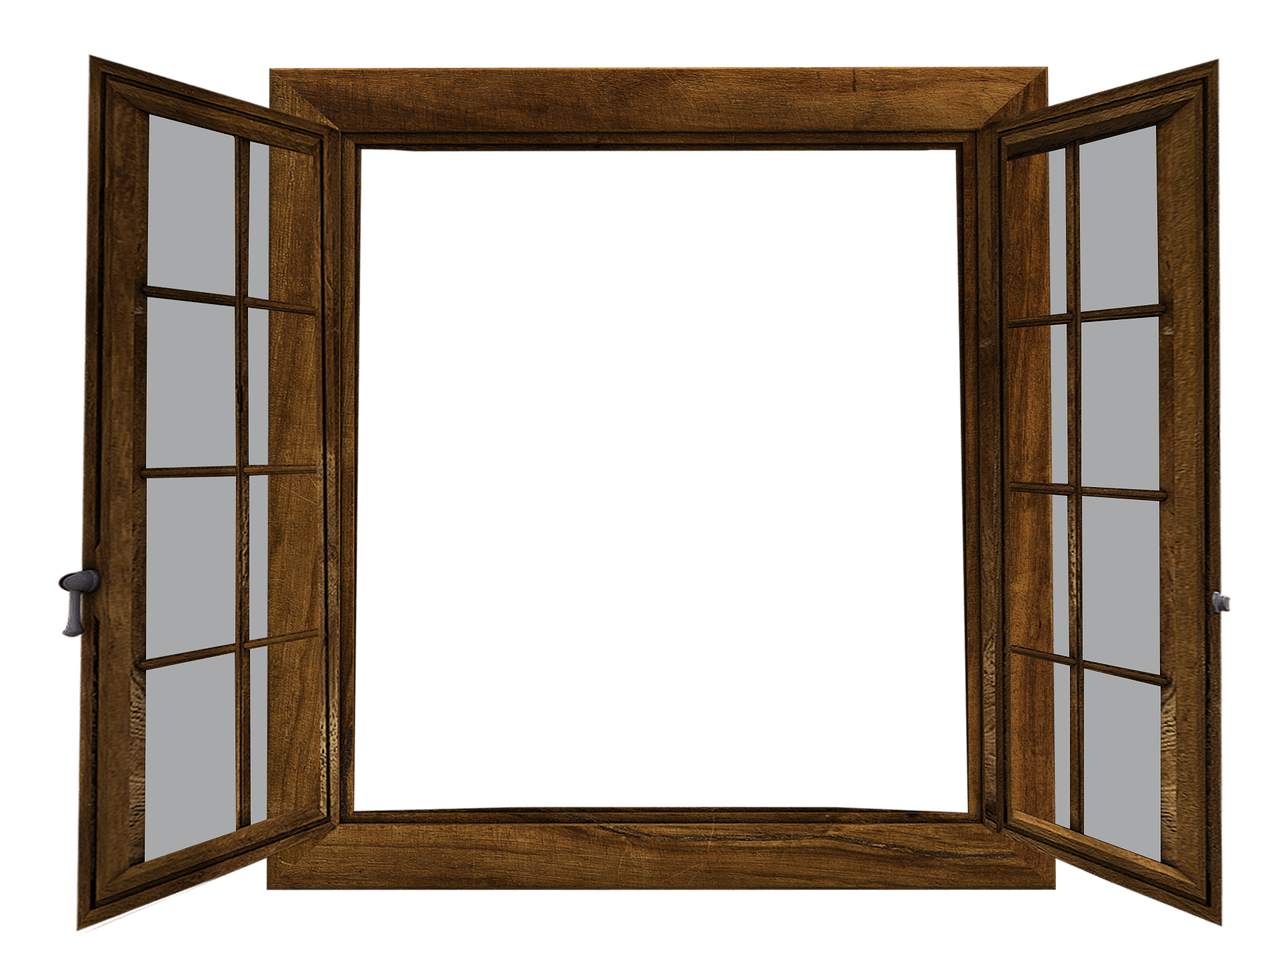 Window Twin Double Hung Two Sides Open transparent PNG.